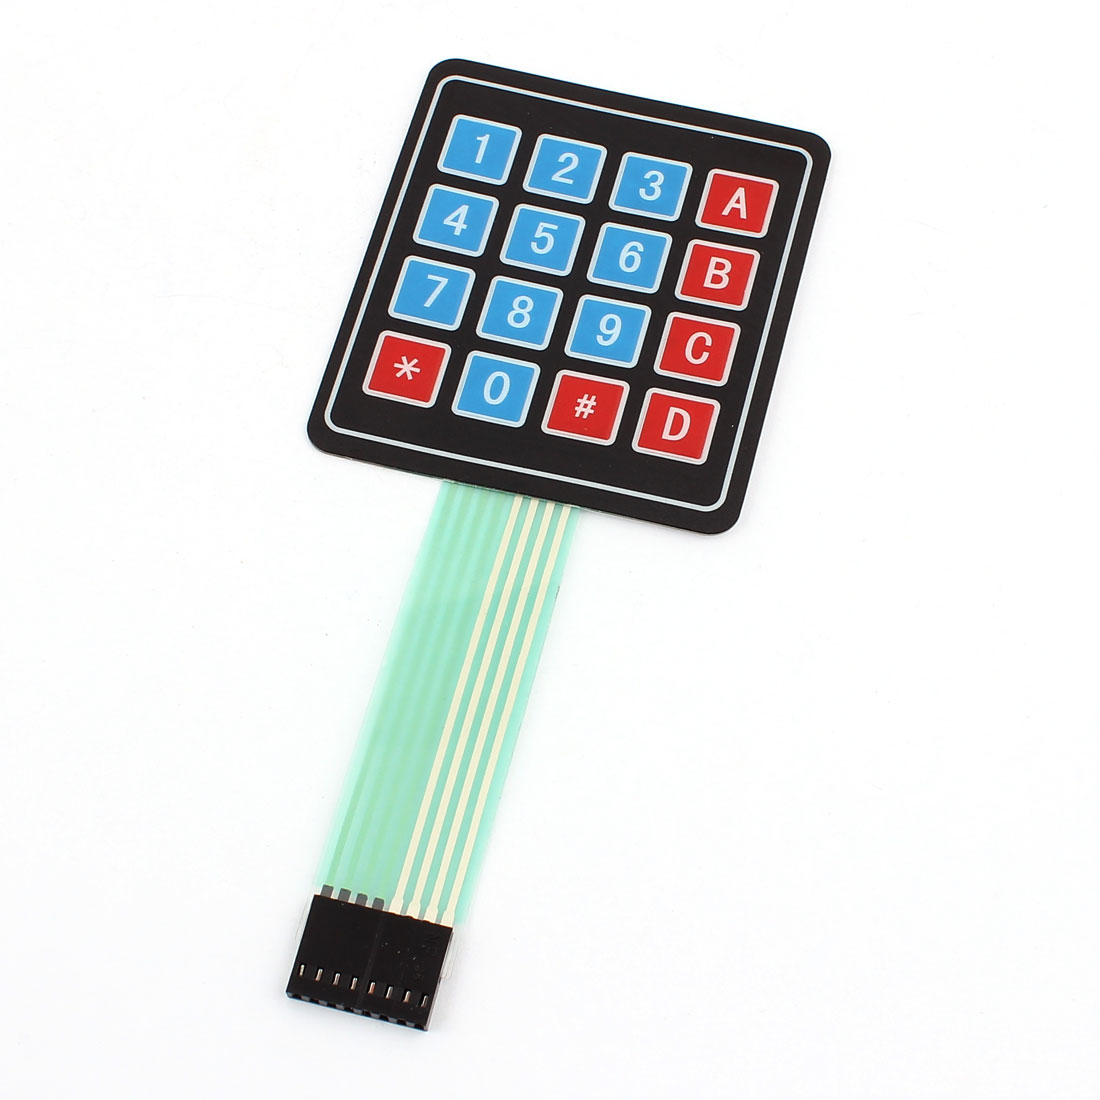 DC 12V 4x4 Matrix 16 Keys Membrane Switch Controller Keypad Keyboard